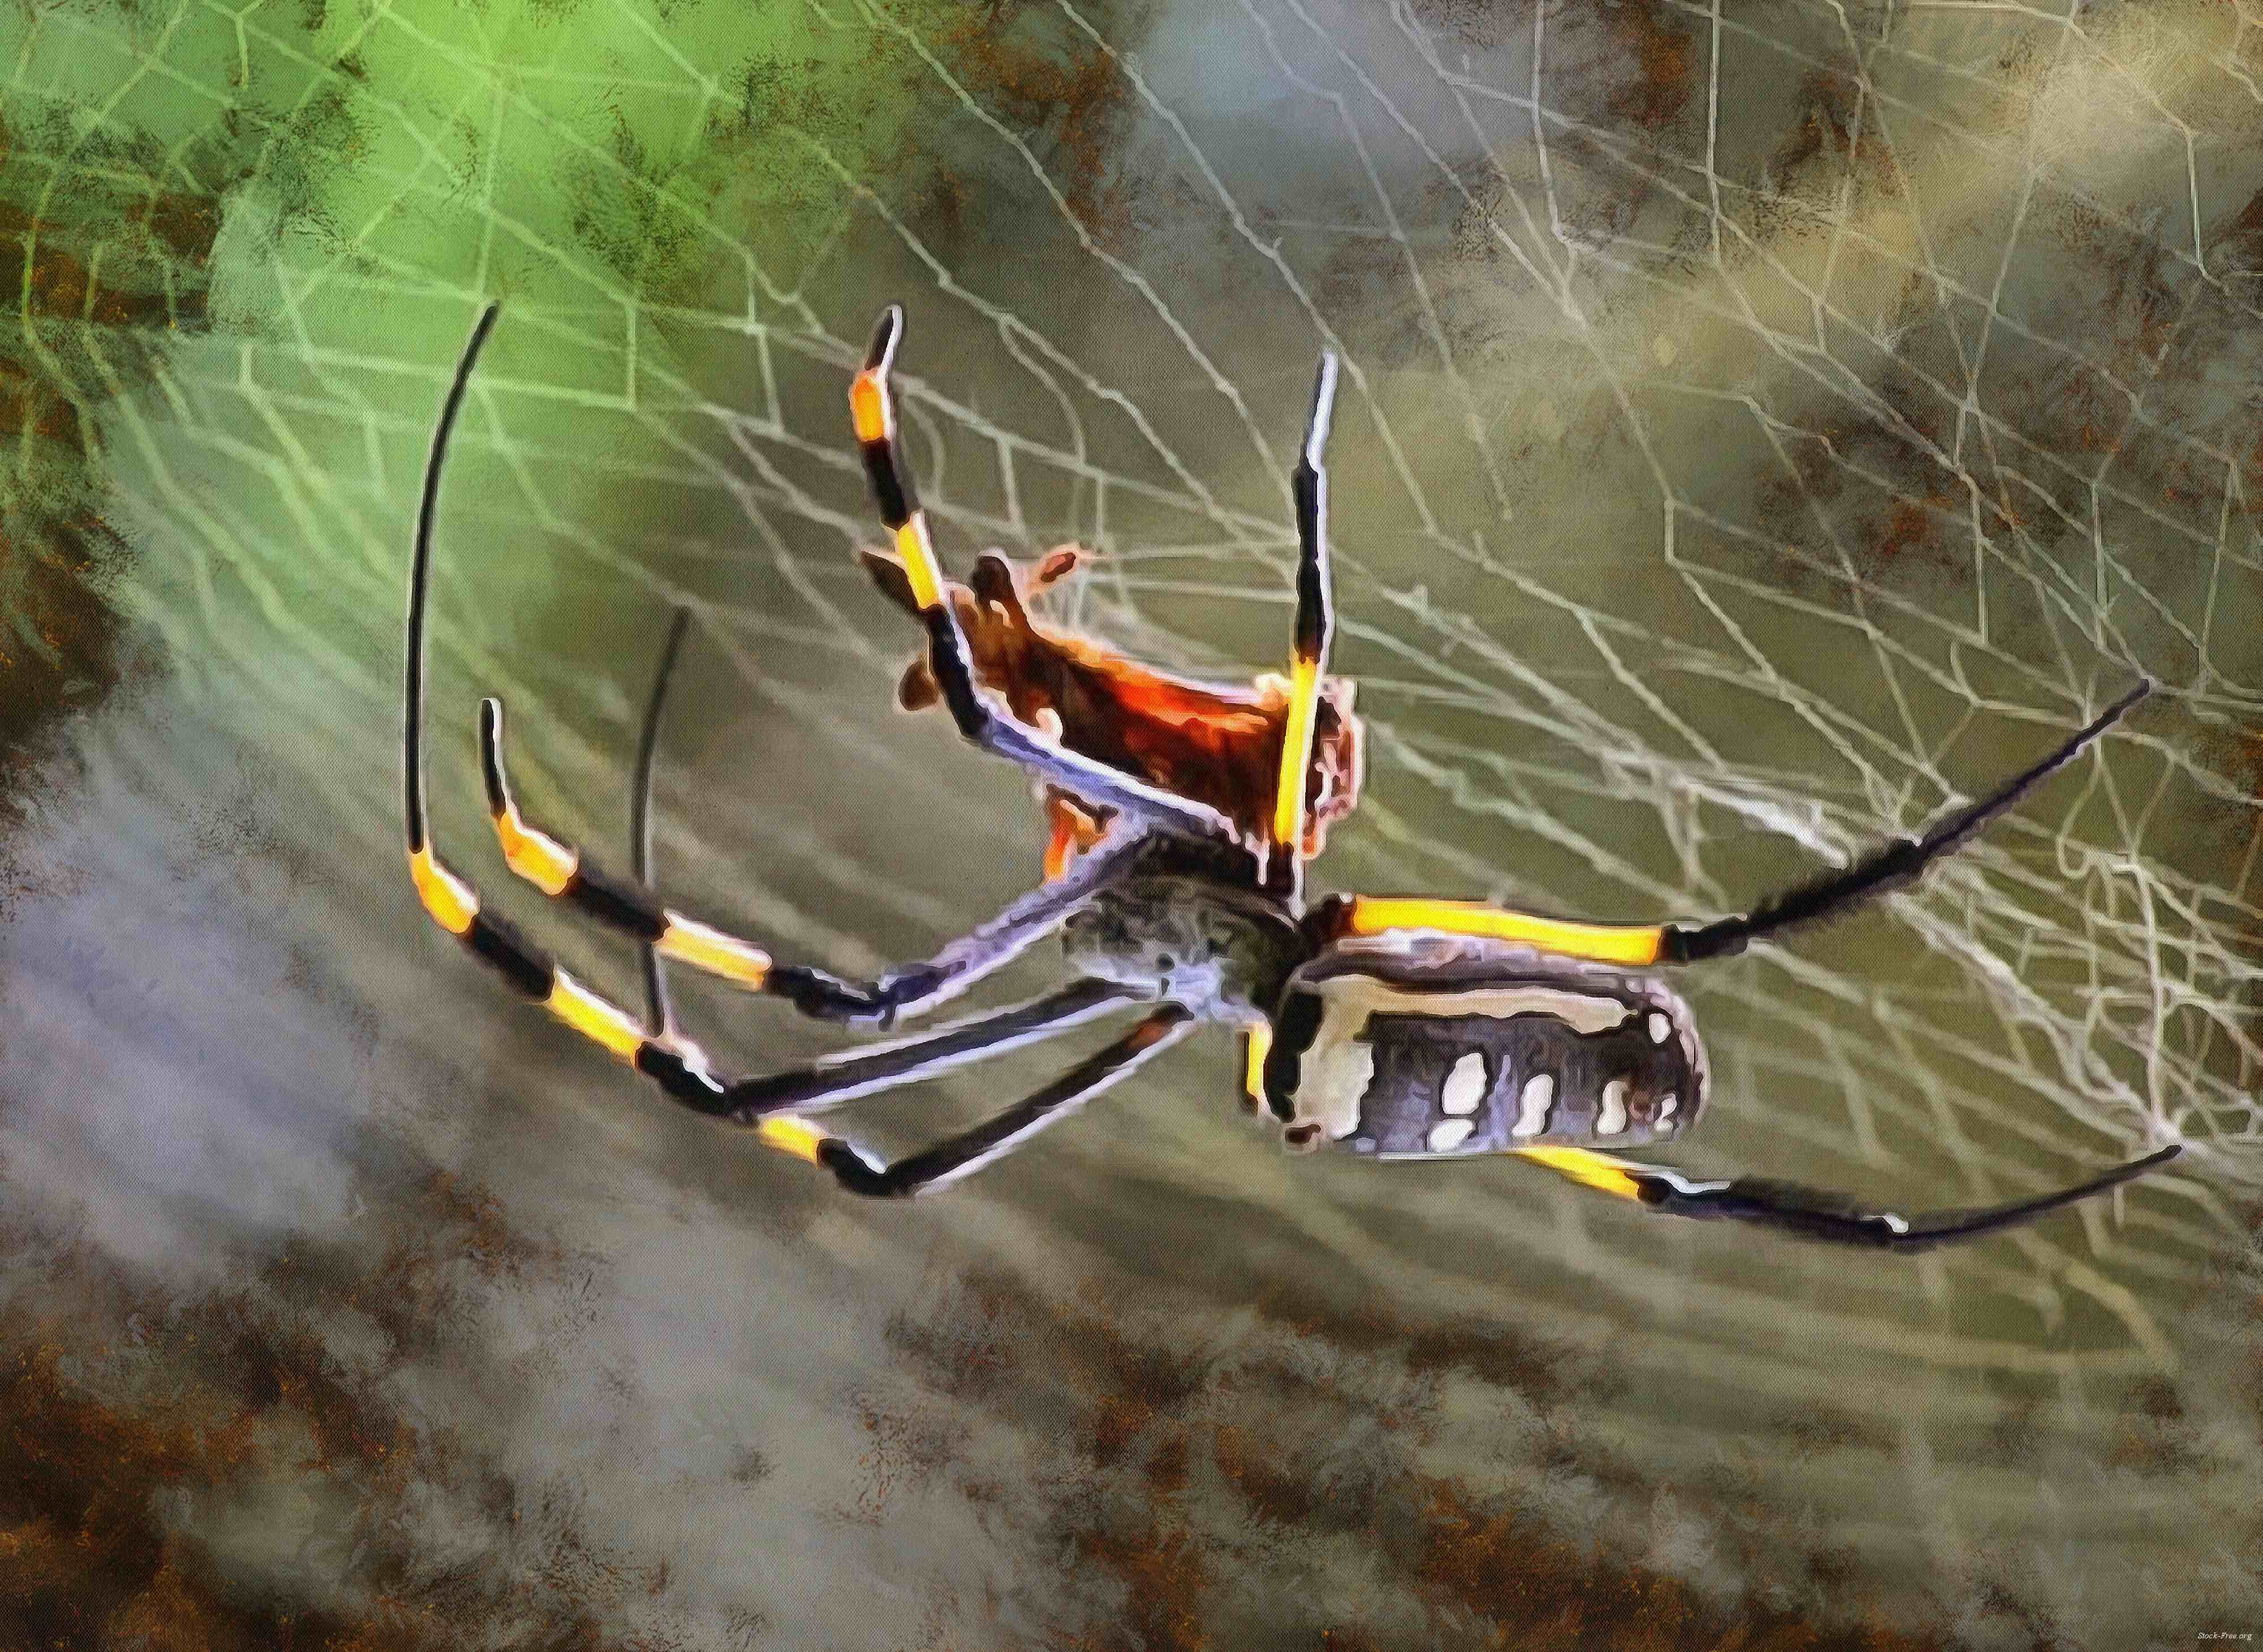 spider, spiders, horror, arachnids, villi, legs, scary, cobweb, insects, halloween, - stock free images, public domain, free images, download images for free, public domain photos, free stock image